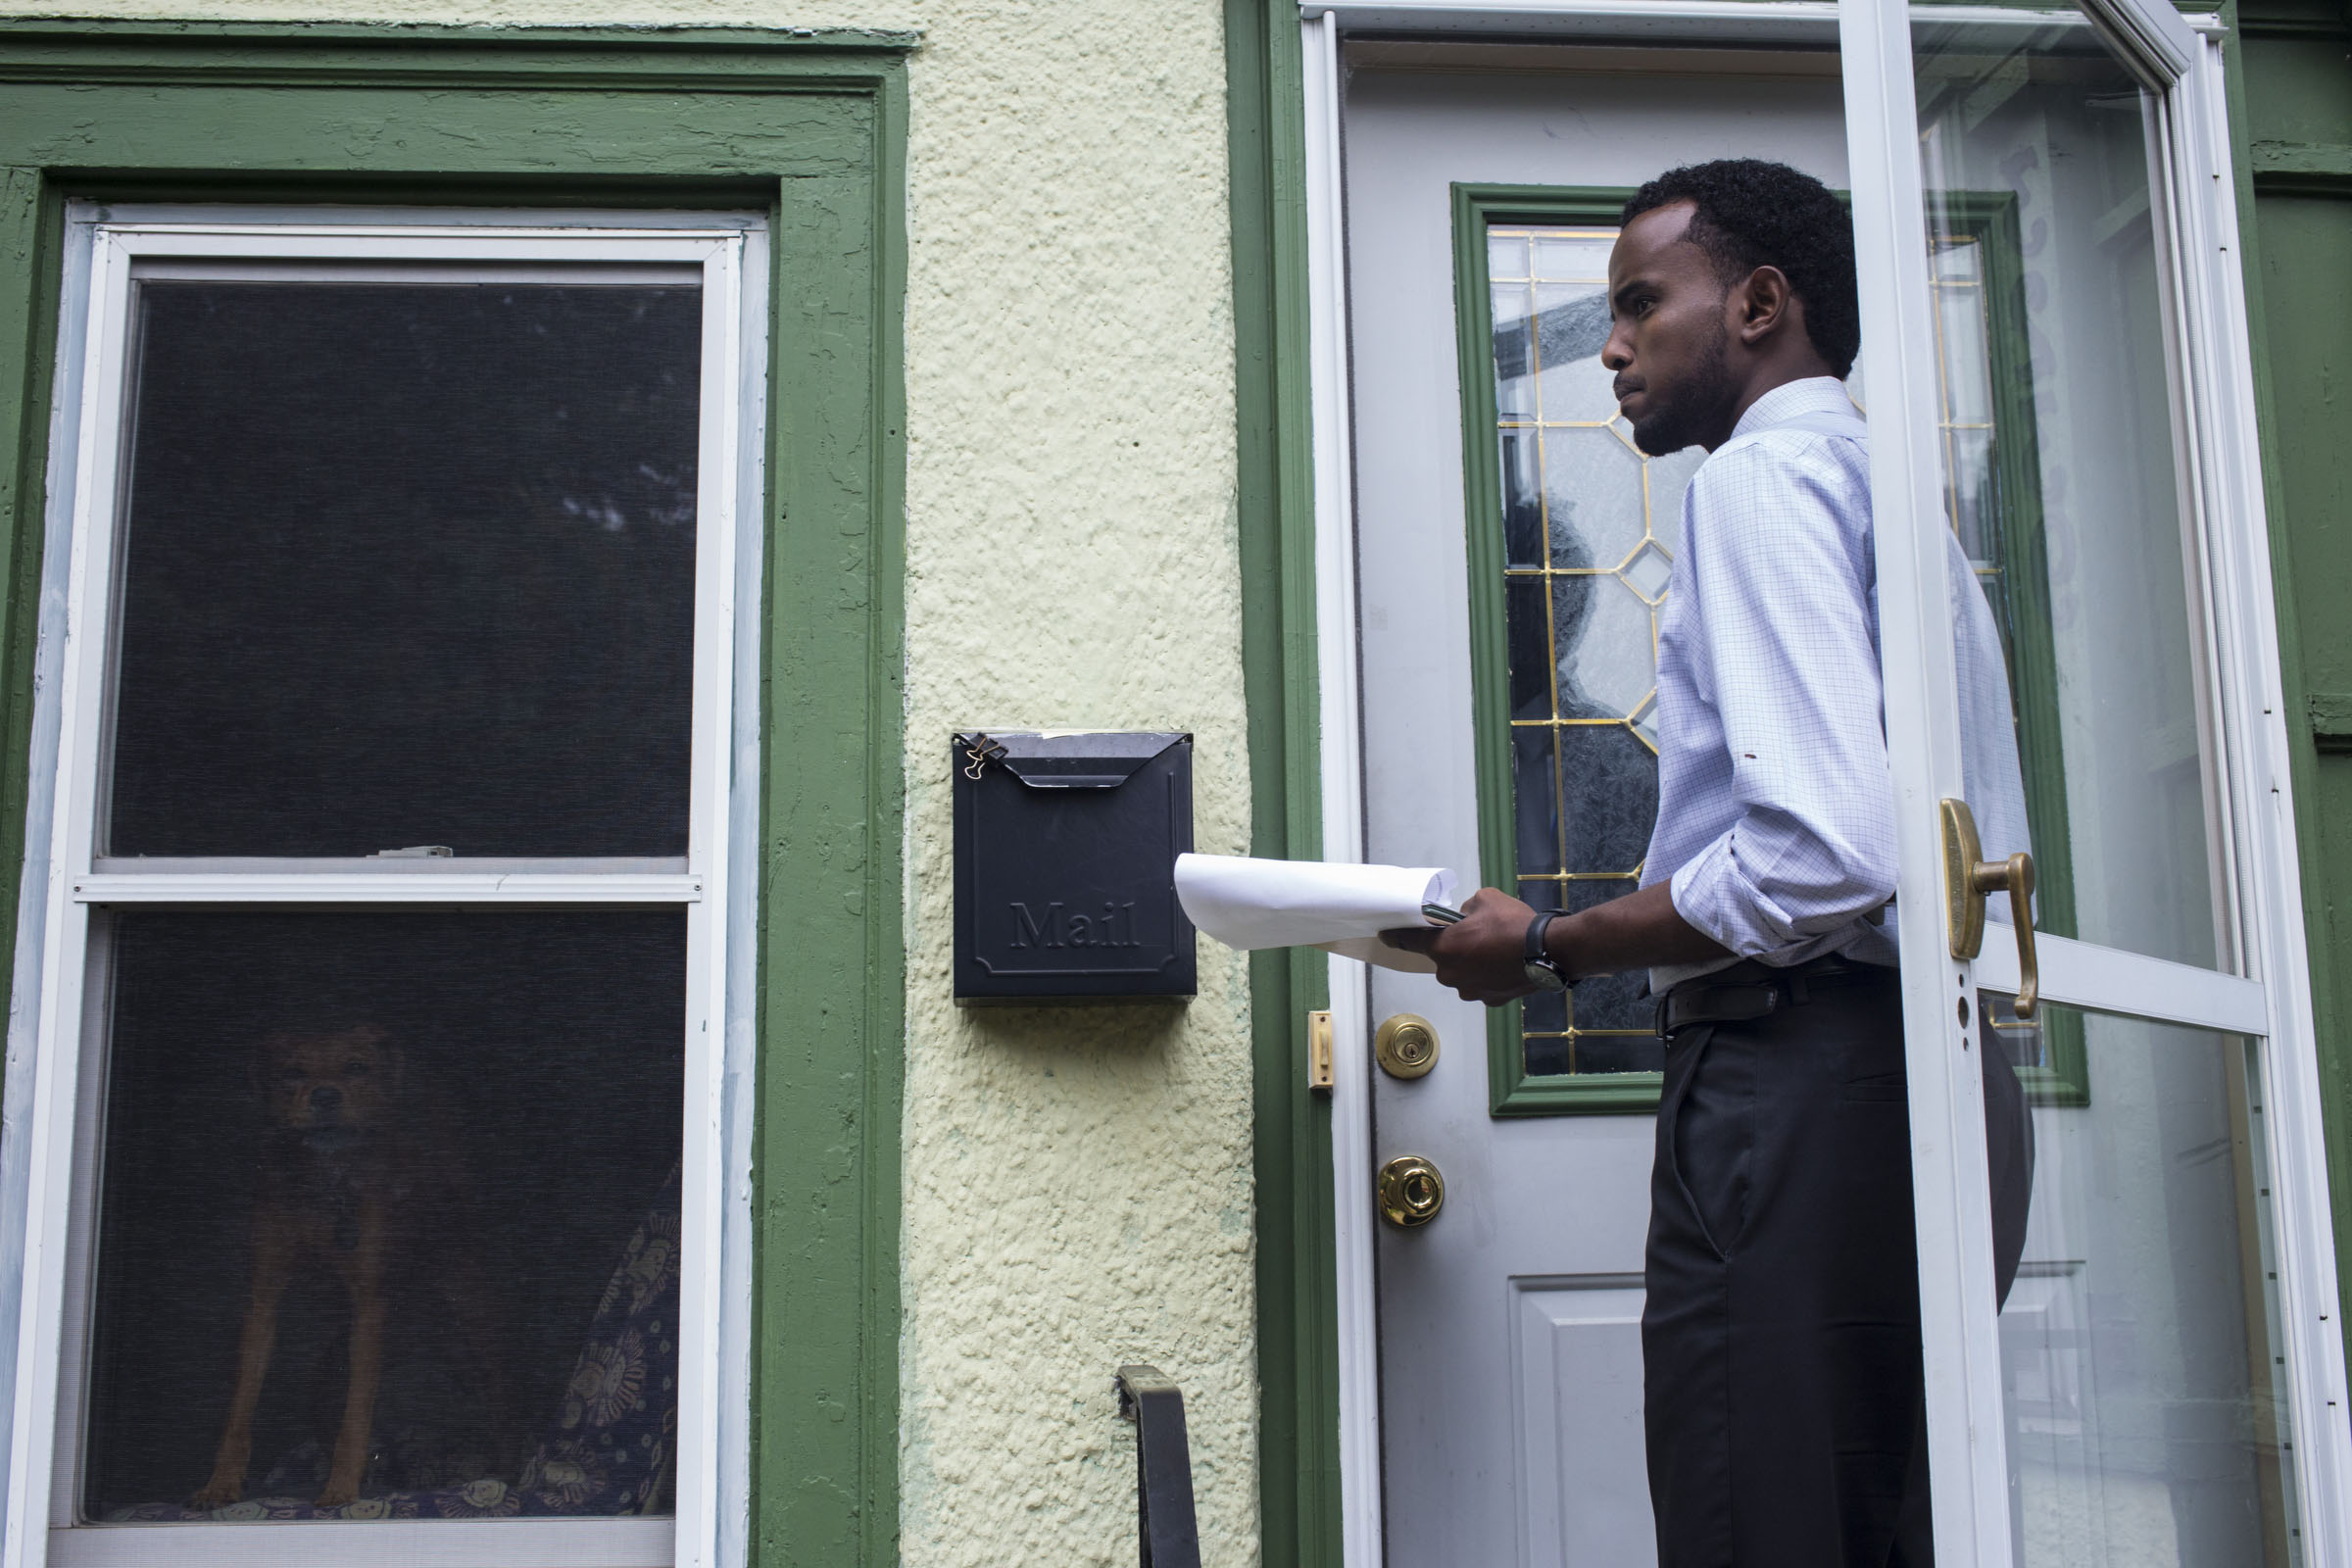 AK Hassan, 26, goes door to door while campaigning for Minneapolis Park Board in Longfellow, Minneapolis, Minn., on Saturday, October 7, 2017. If elected, Hassan said he would be the first Somali and youngest person to ever serve on the park board. (Photo by Brittany Greeson)